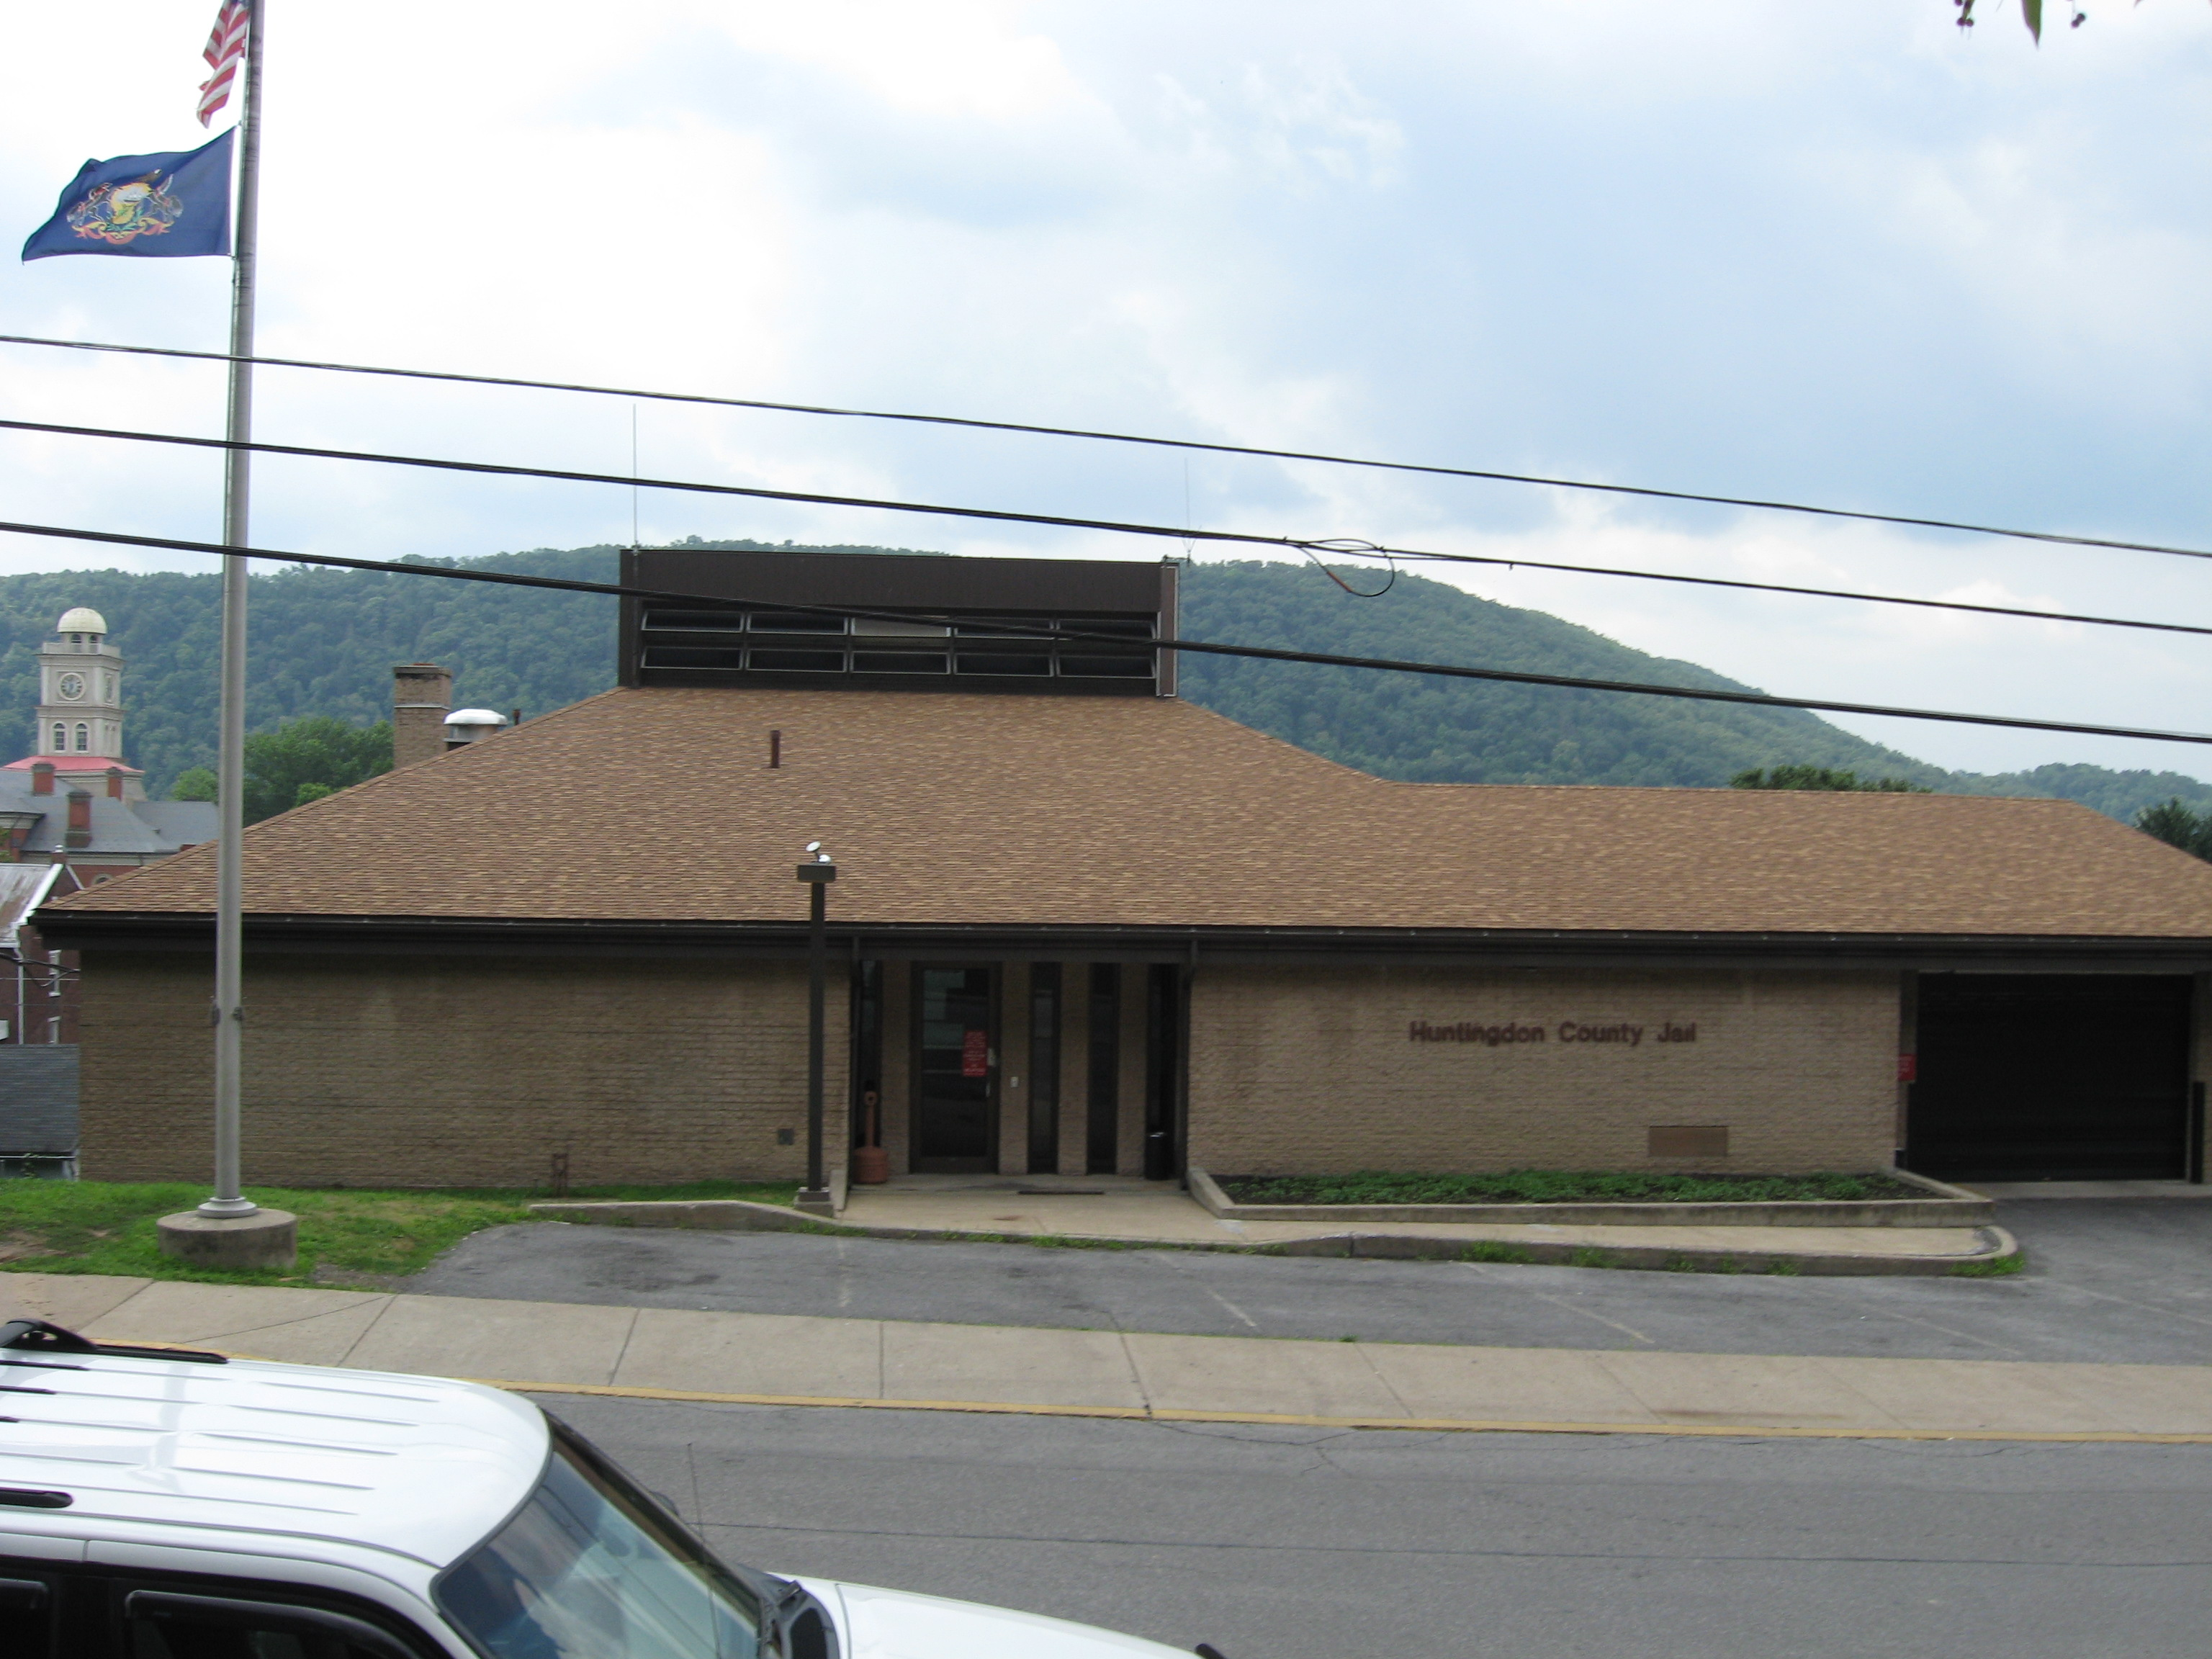 Huntingdon County Jail